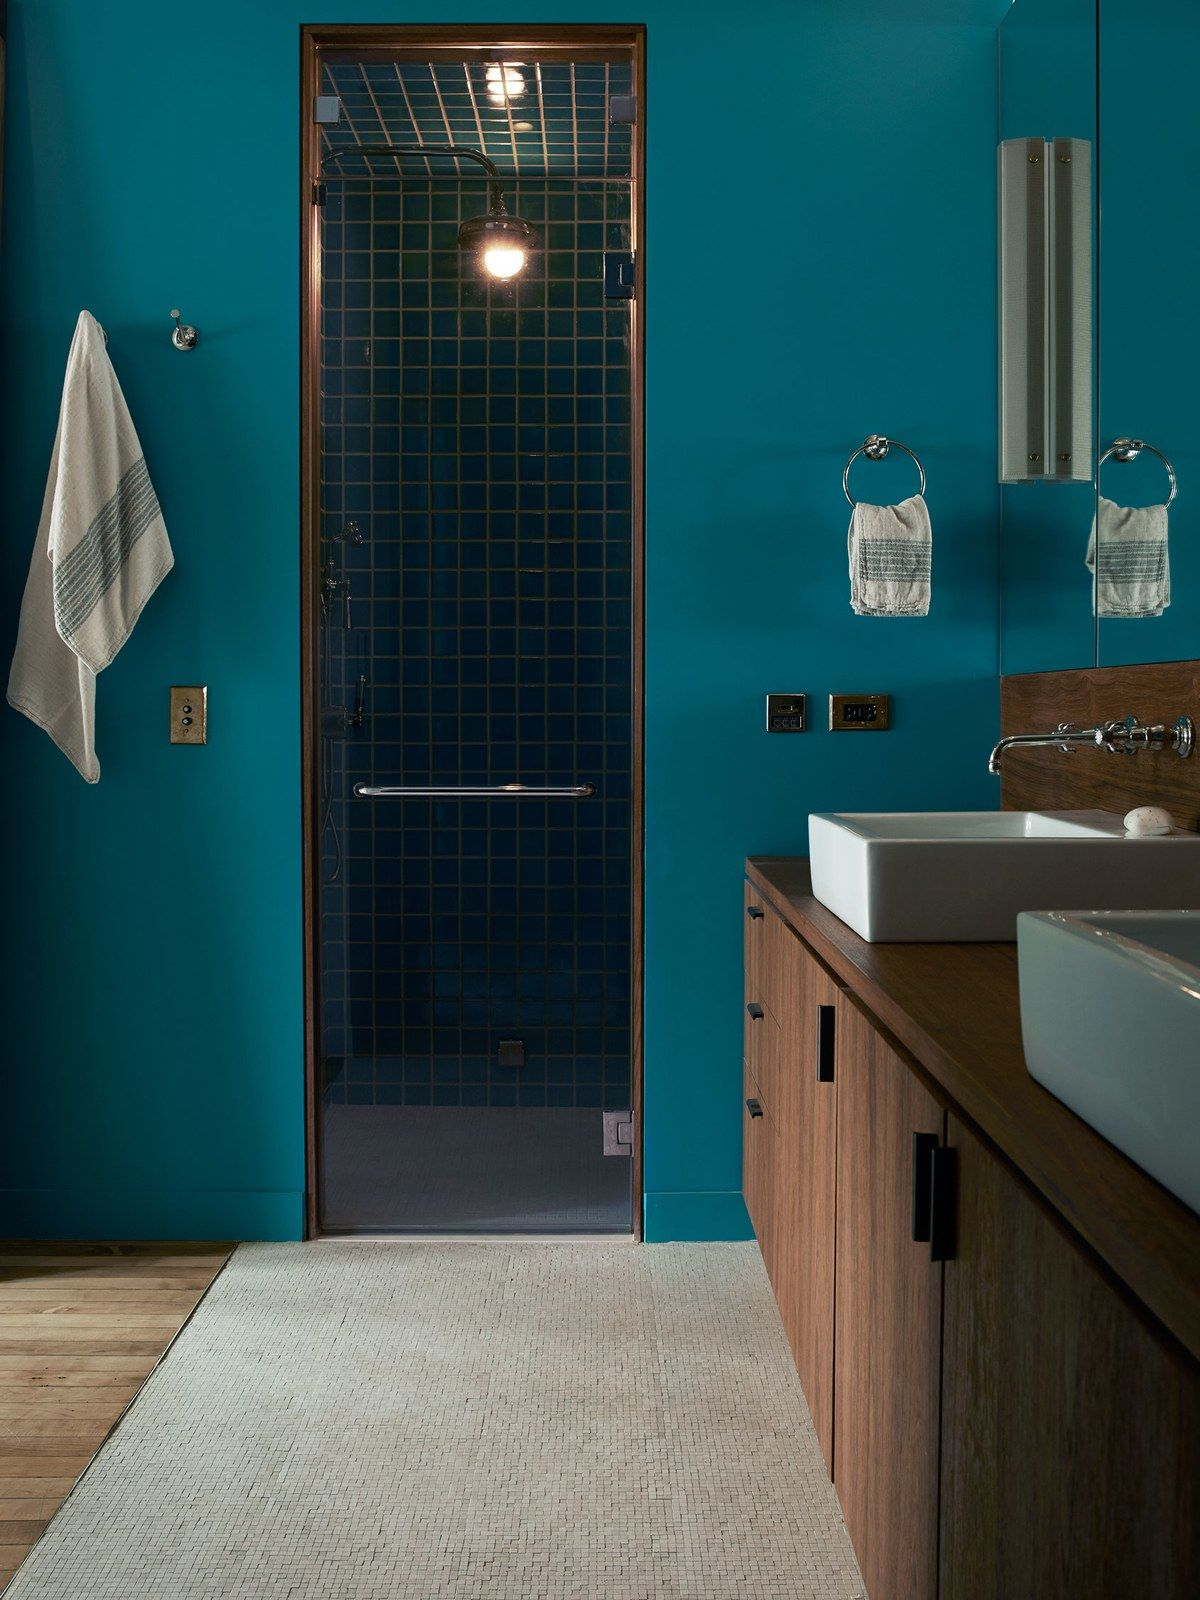 The master bathroom, swathed in Benjamin Moore's San Jose Blue,  features a steam shower wrapped in tiles by Heath Ceramics. The radiant heated floor is paved in limestone tiles in Stone Mosaic by Waterworks. The teak finished vanity, counter and backsplash are custom.